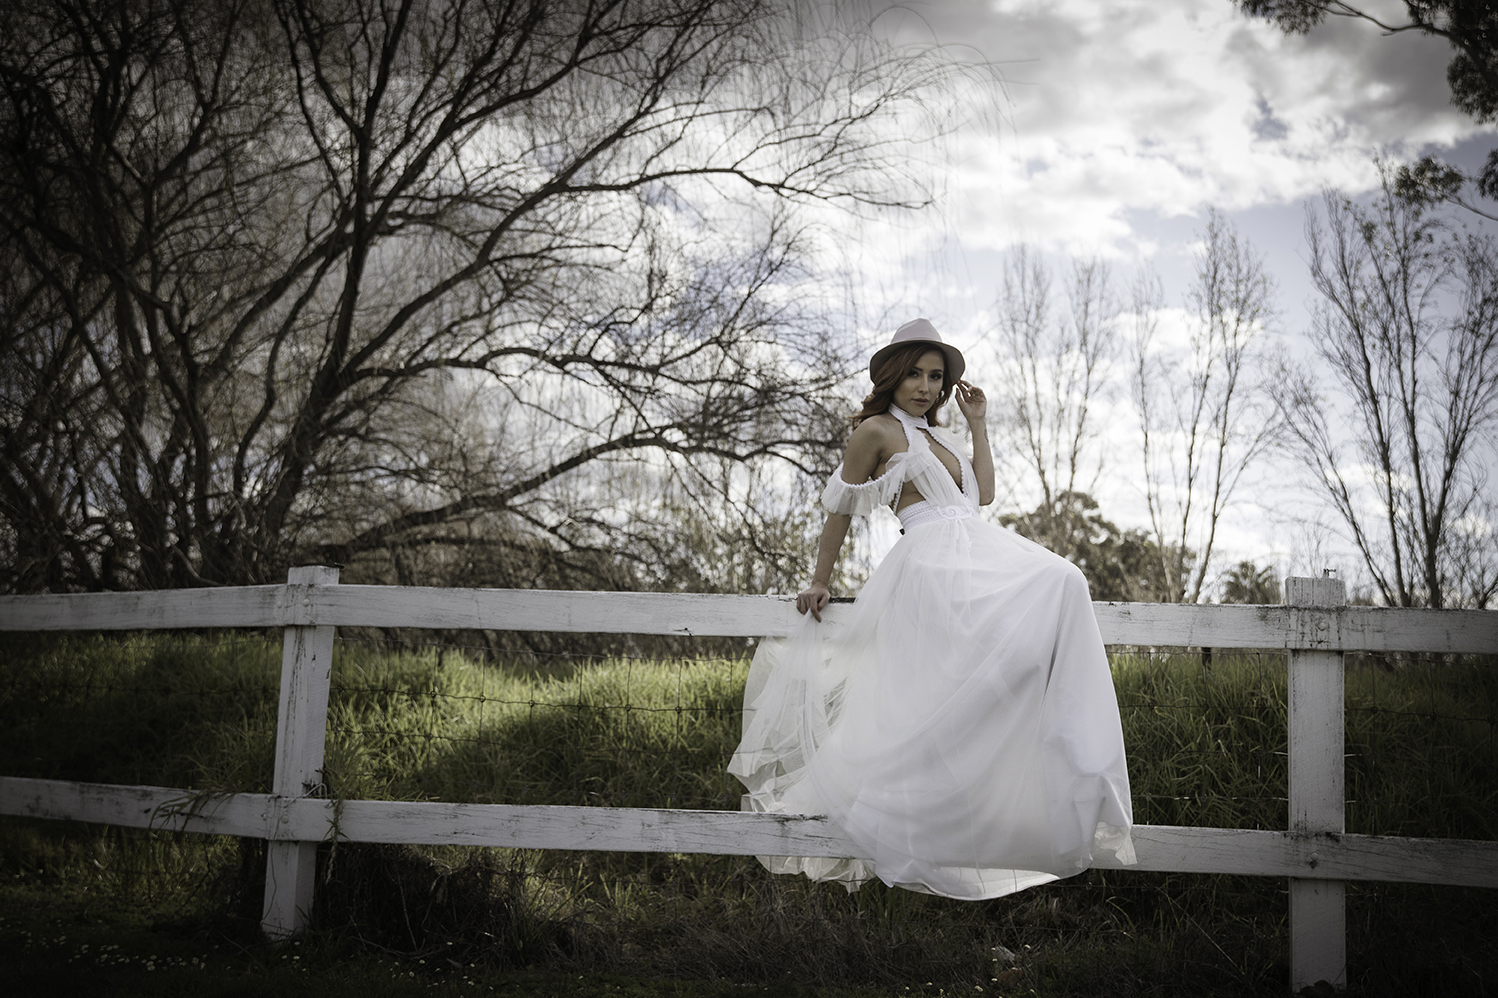 rosita photography wedding venue weddings australian bridal floral design bride andn bride